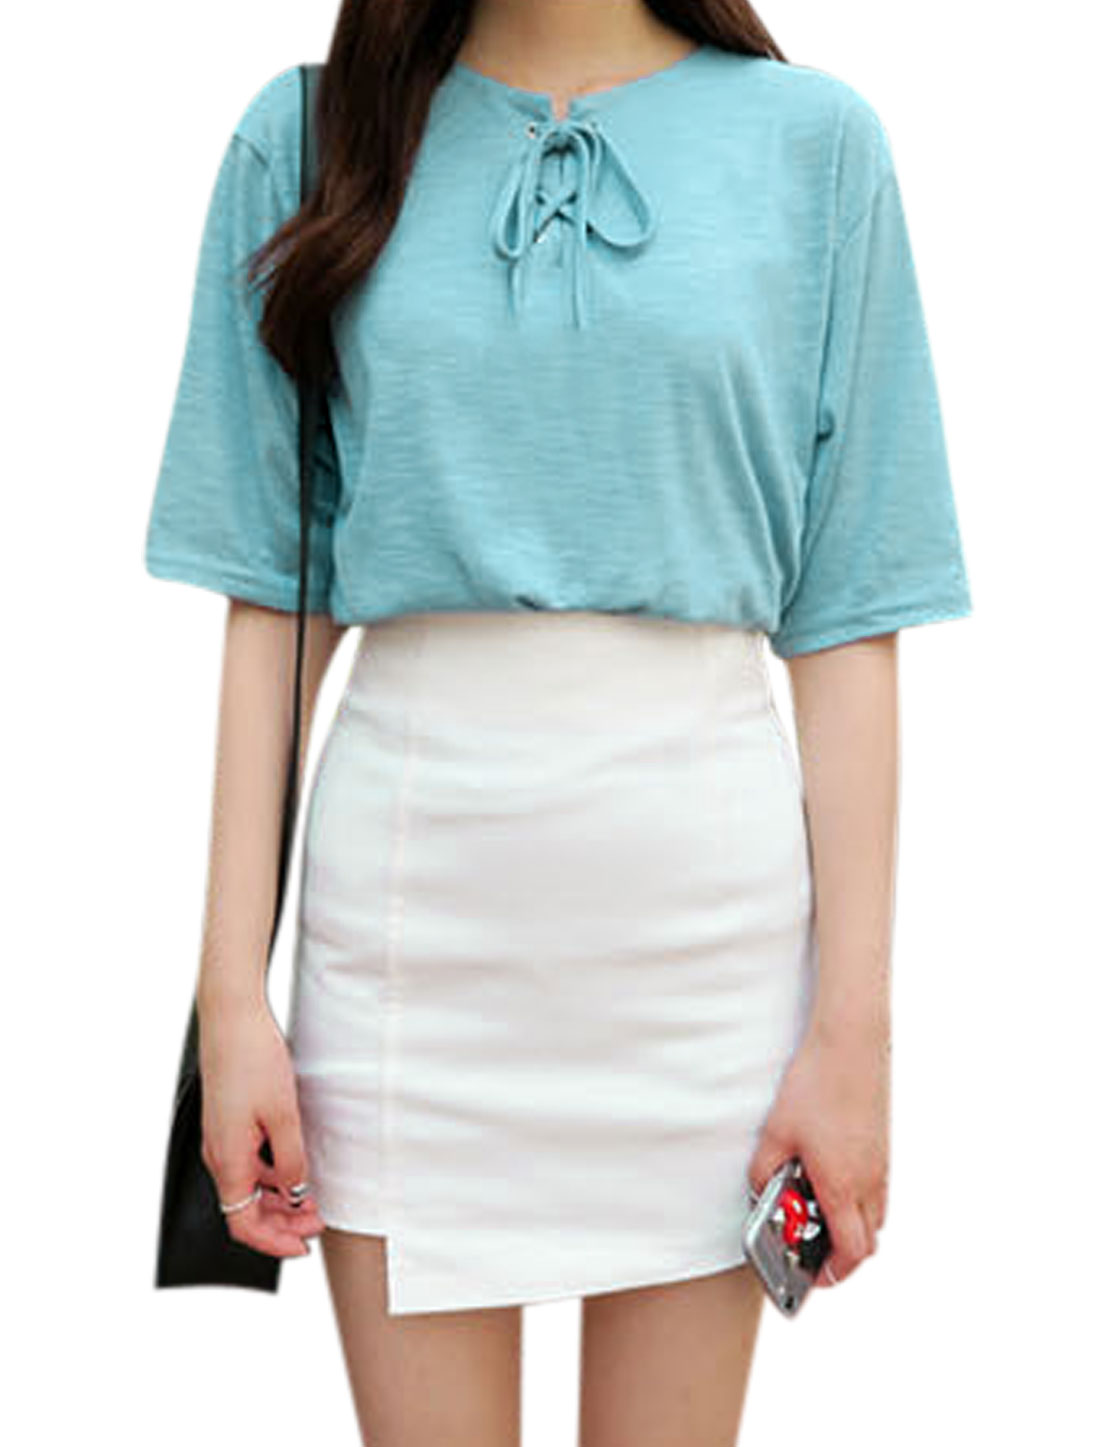 Ladies Split Neck Short Sleeves Lace-Up Front Casual Shirts Sky Blue XS